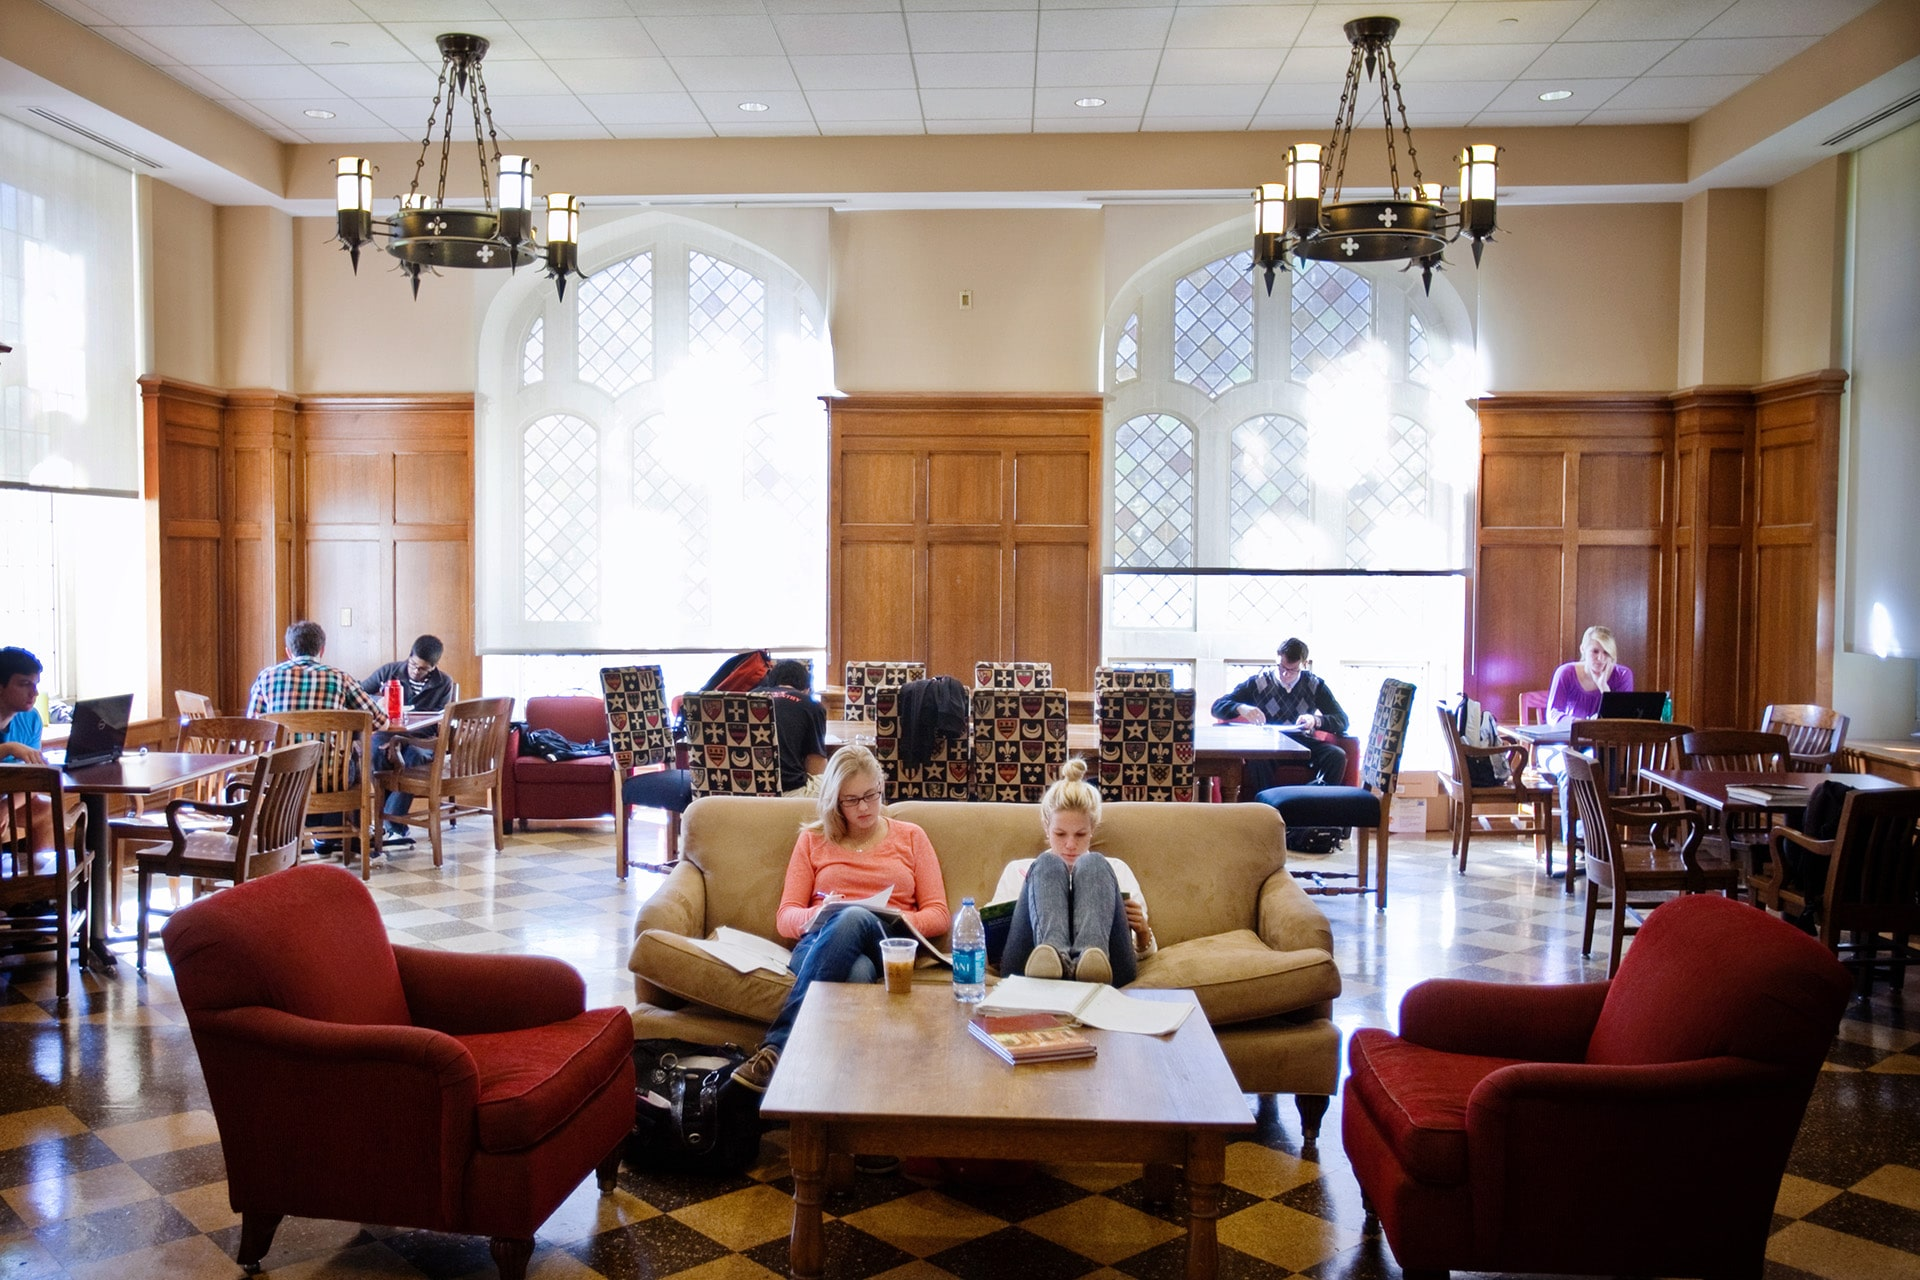 Students studying in a large, bustling common room next to a coffee stand.